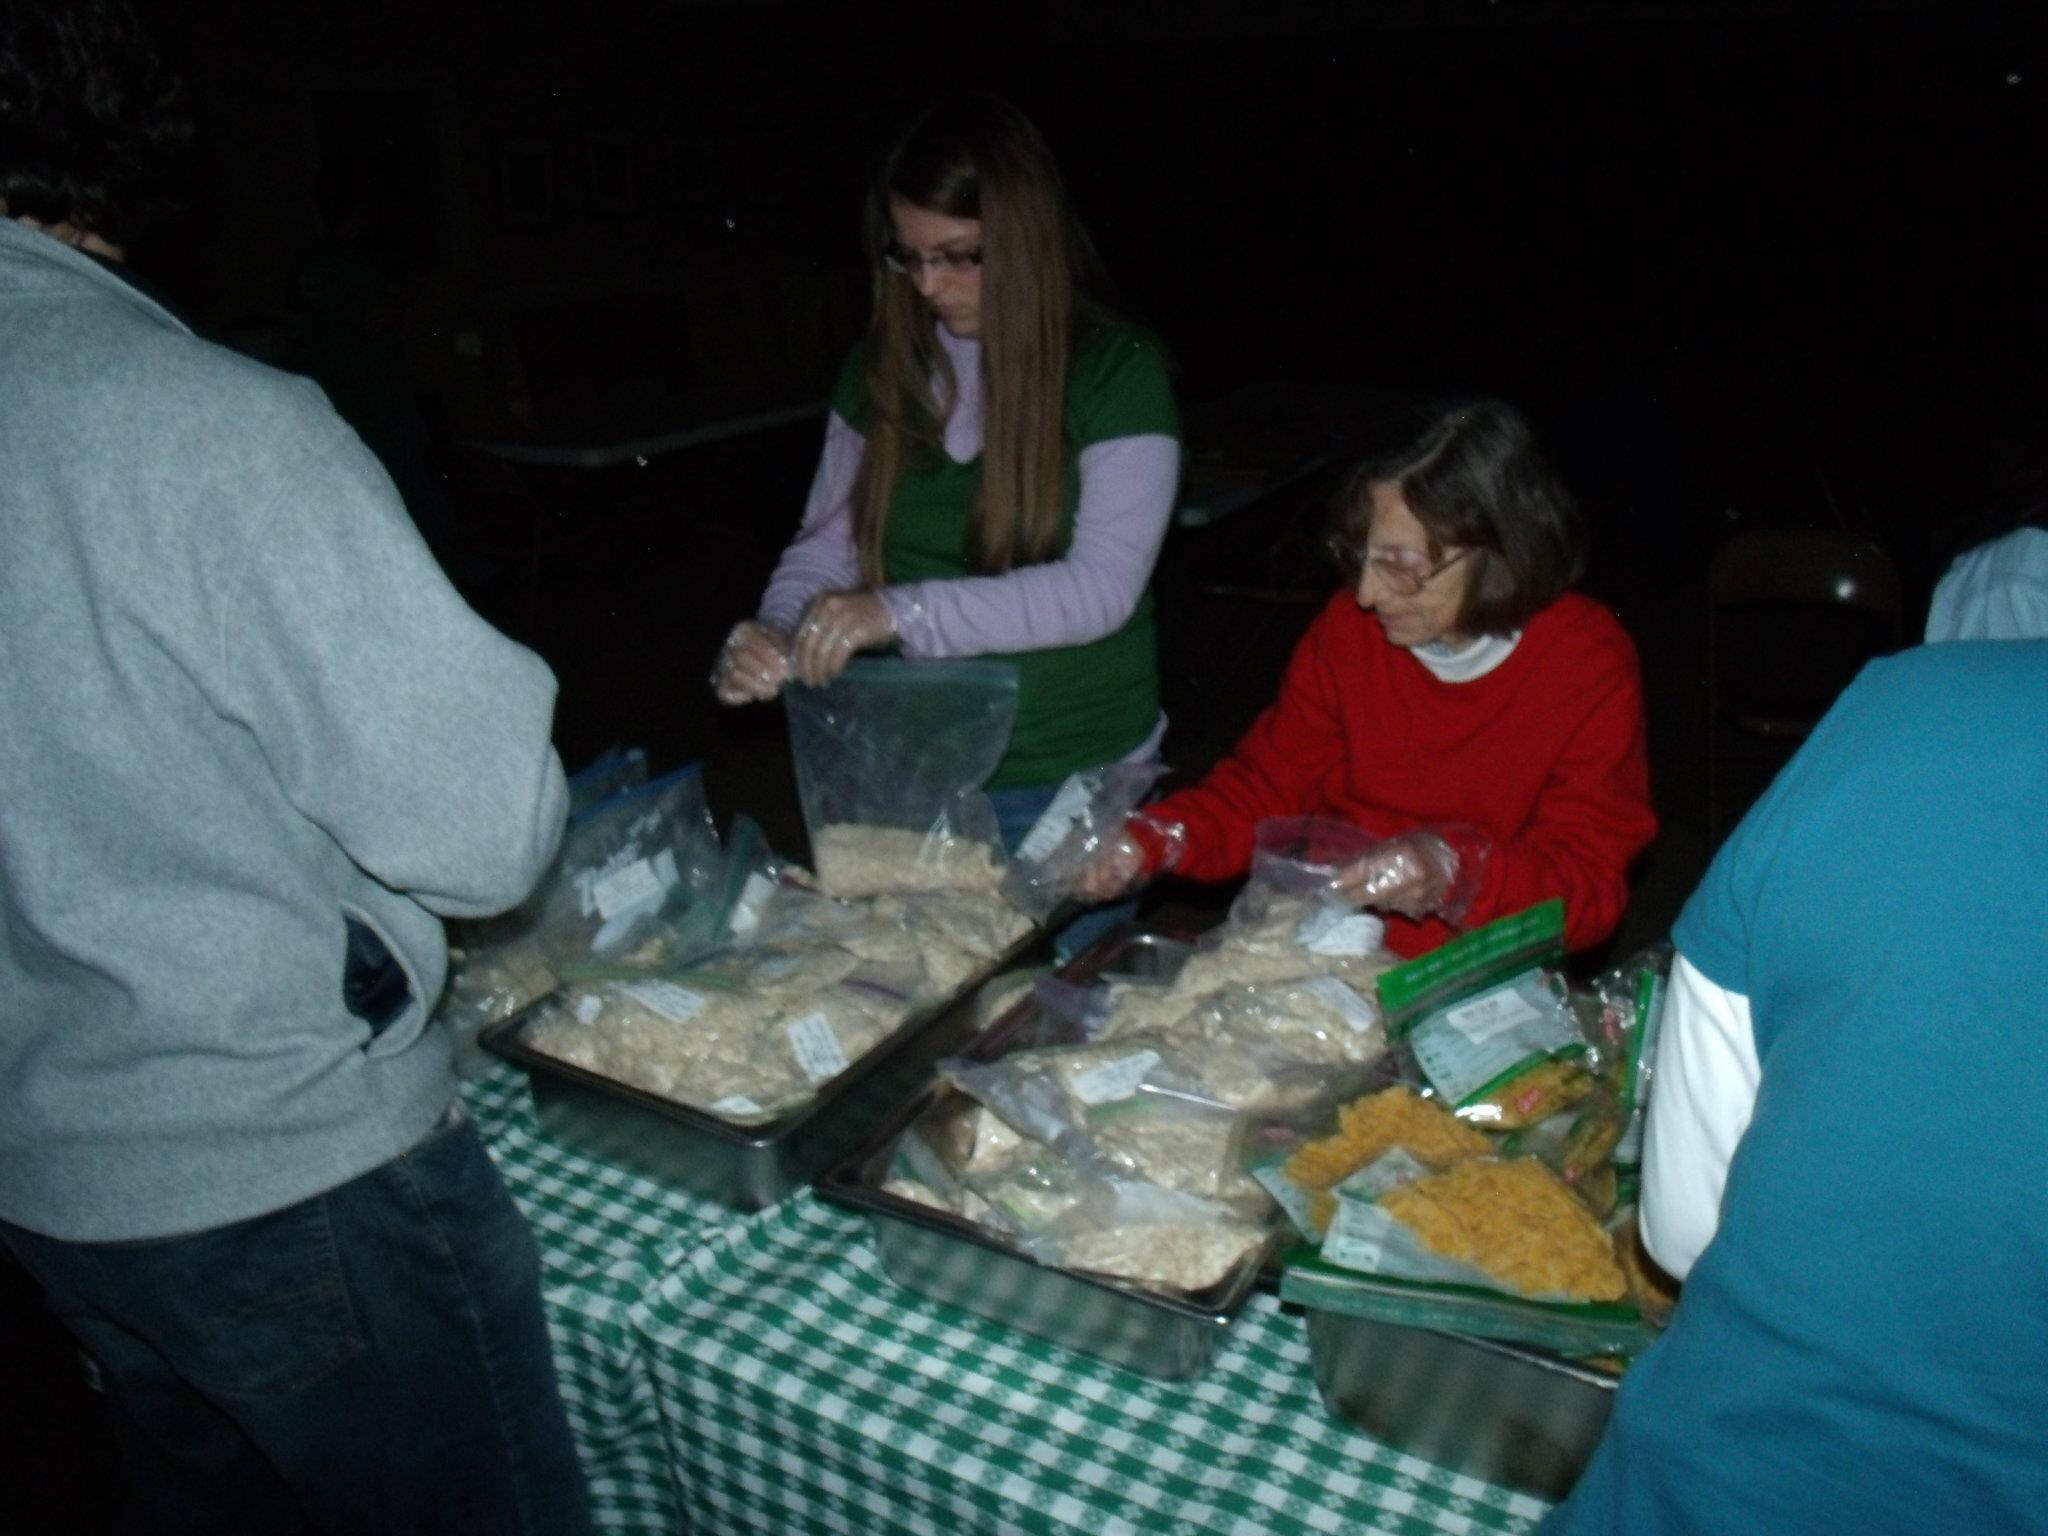 Rev. Cheek (right) and Russell (left) serve a meal to residents in a community during the 2012 travel course